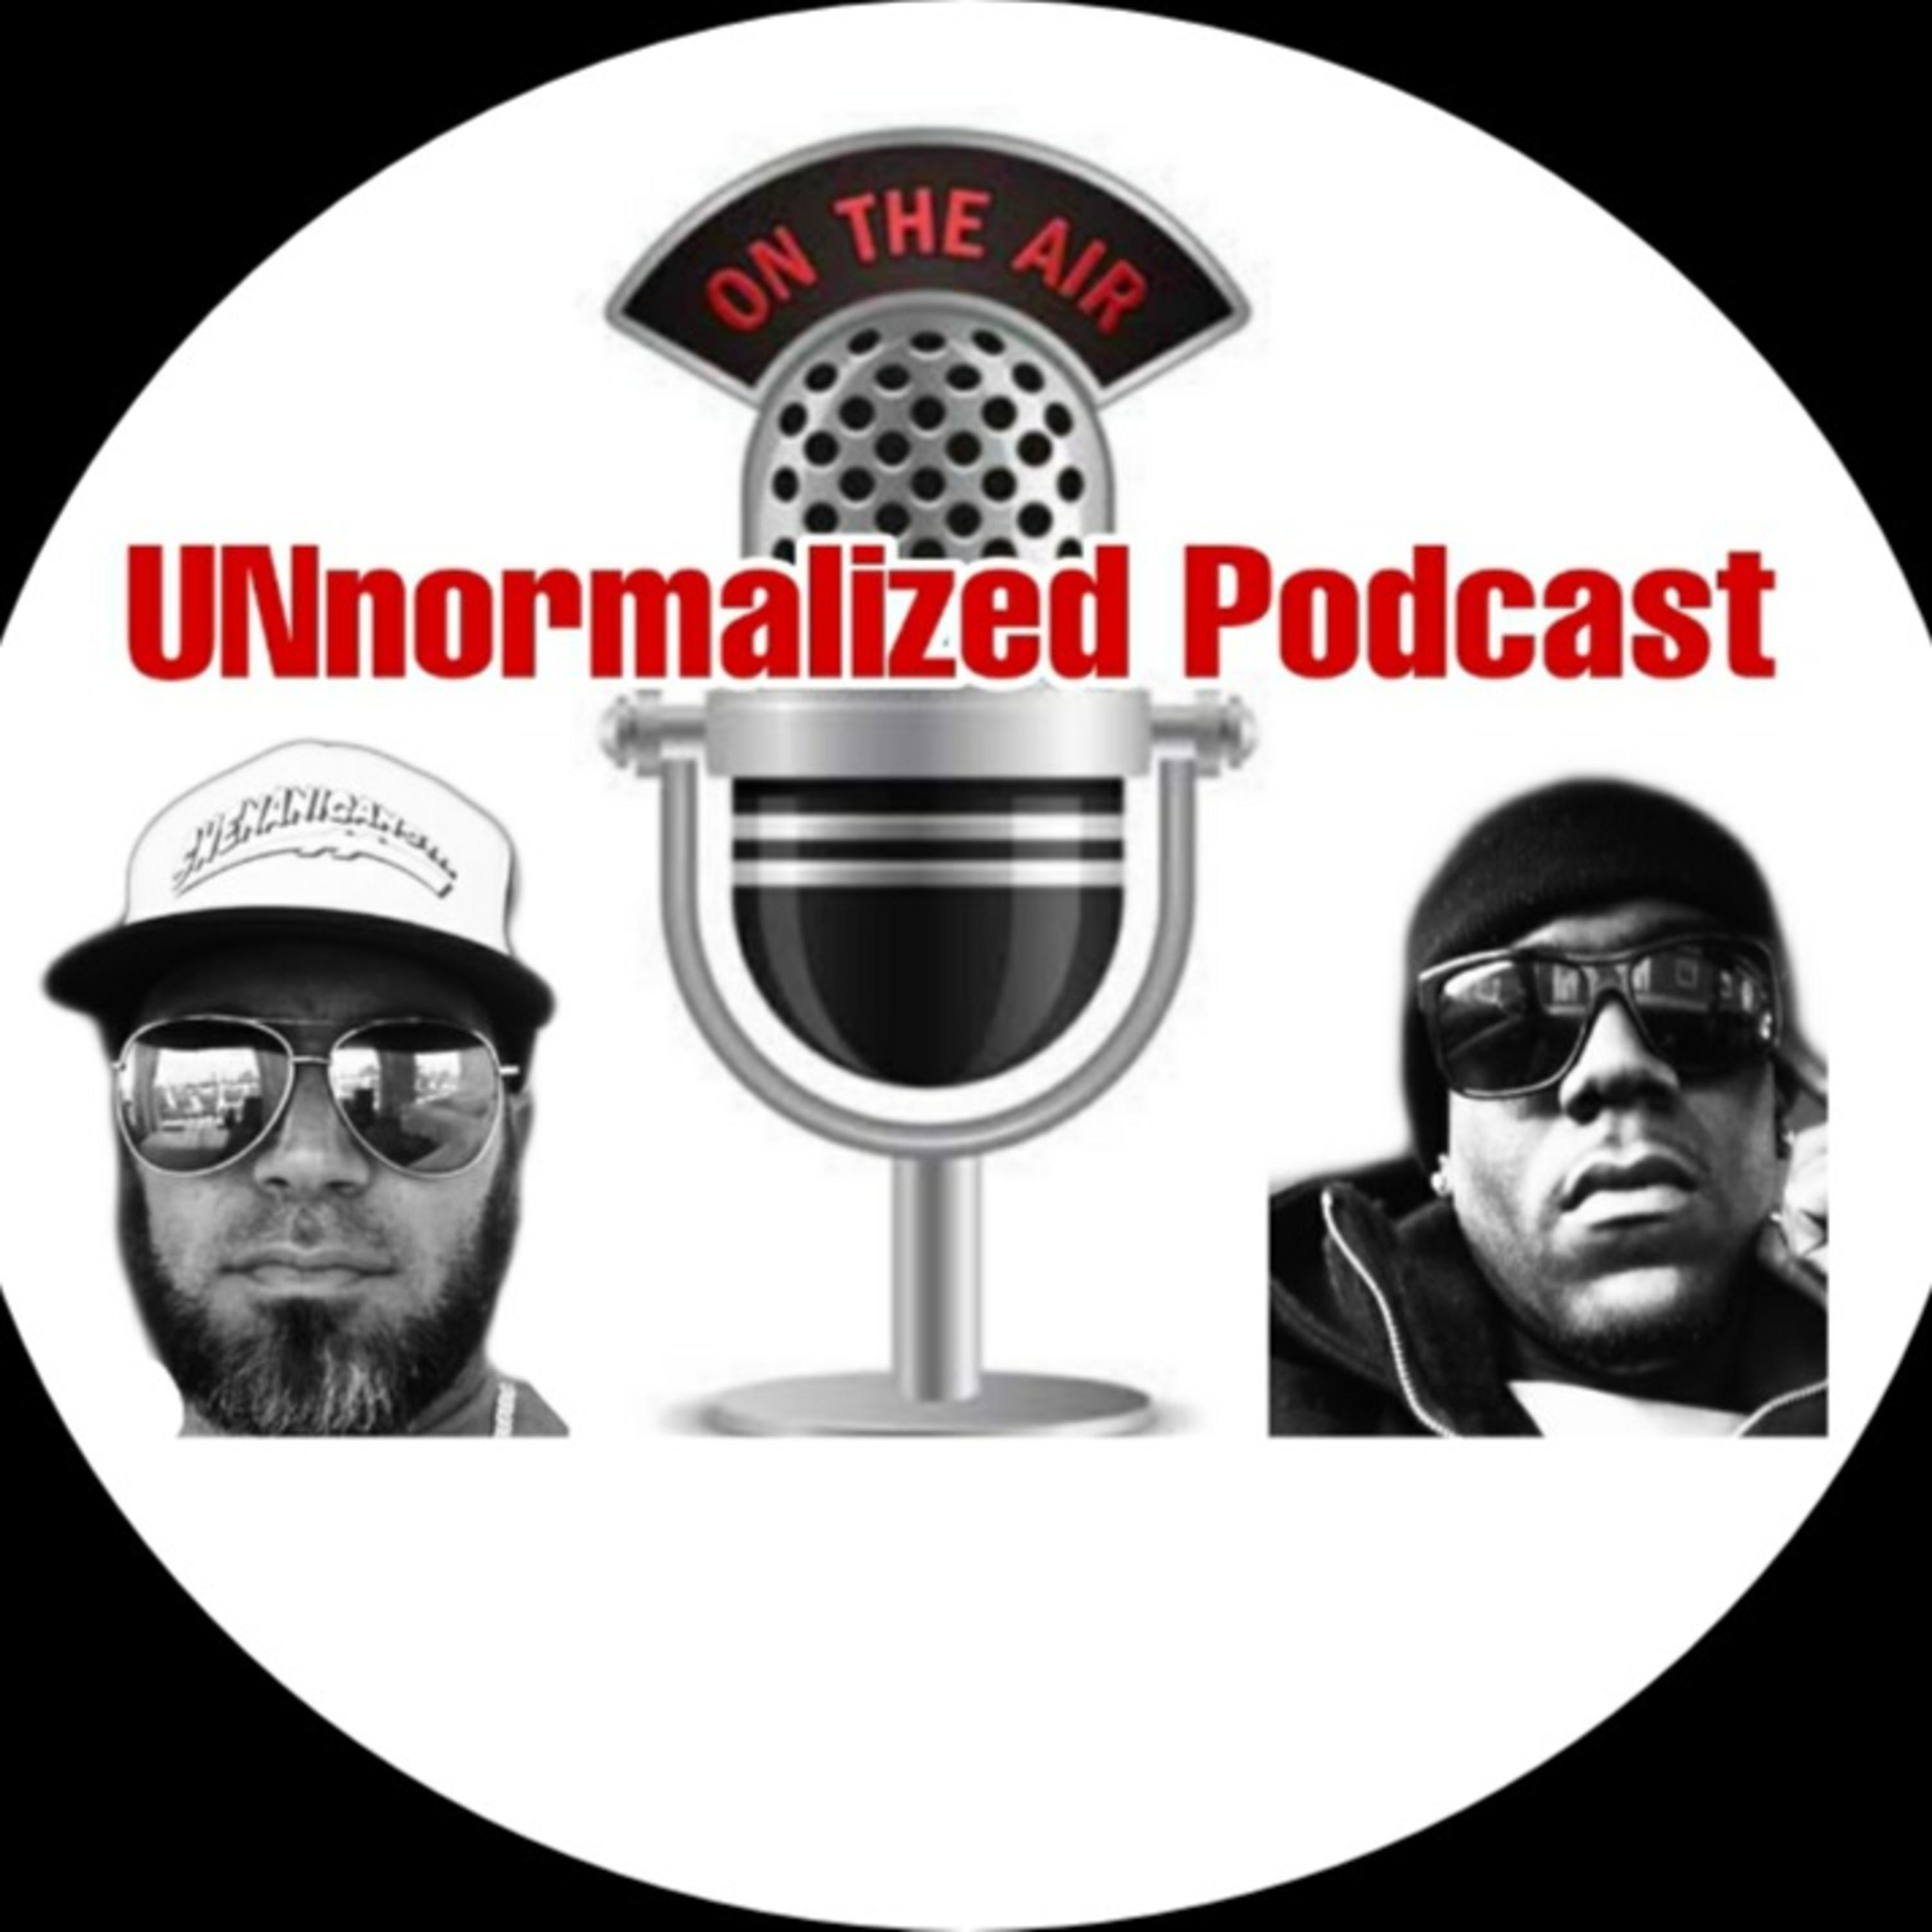 UNnormalized The Podcast